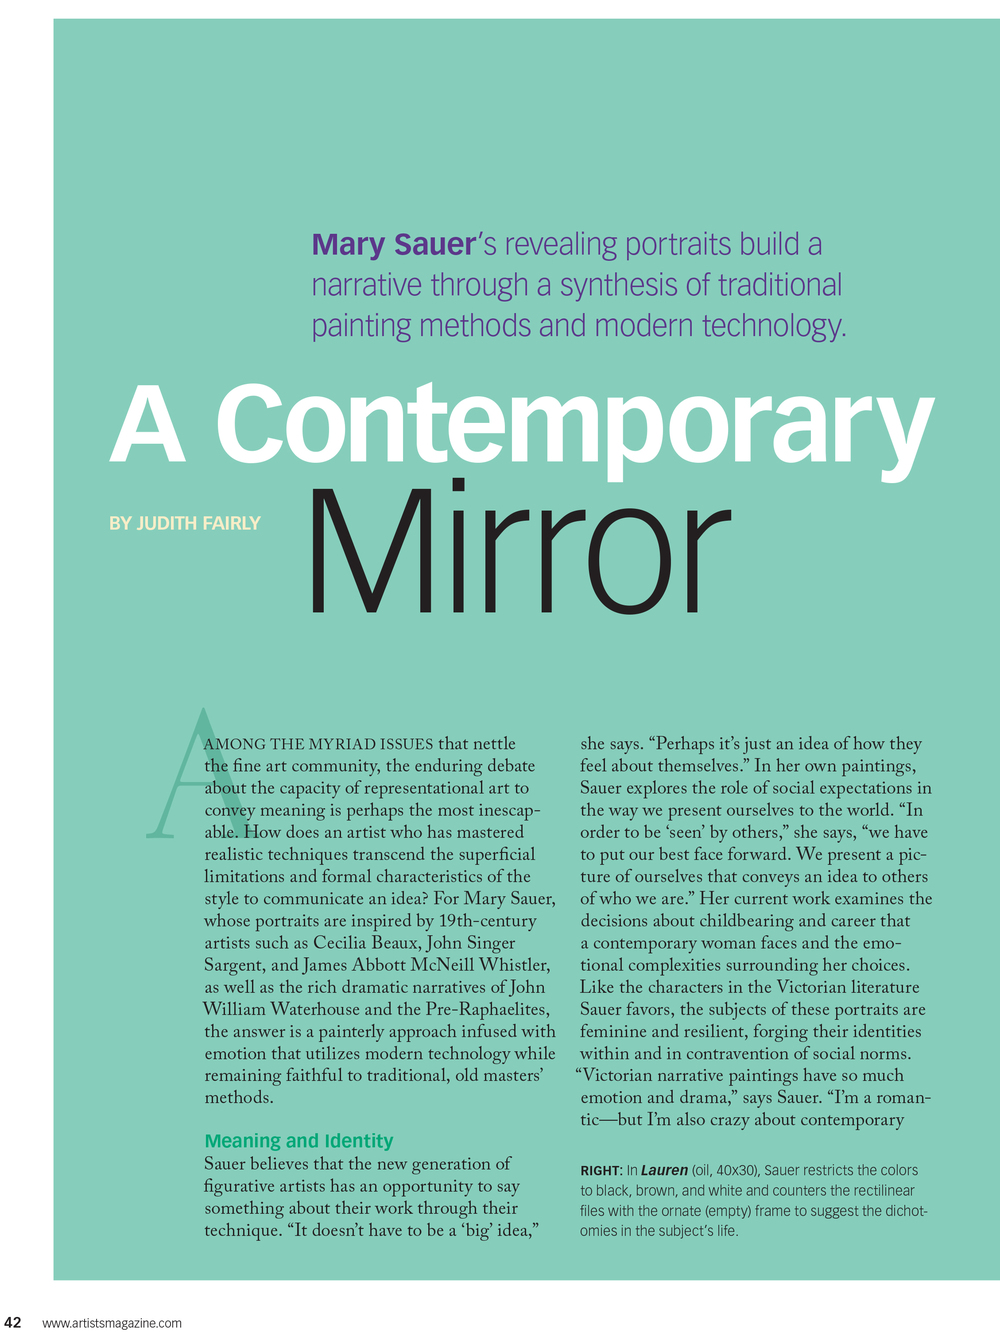 The Artists Magazine -- Mary Sauer Page 1.jpg